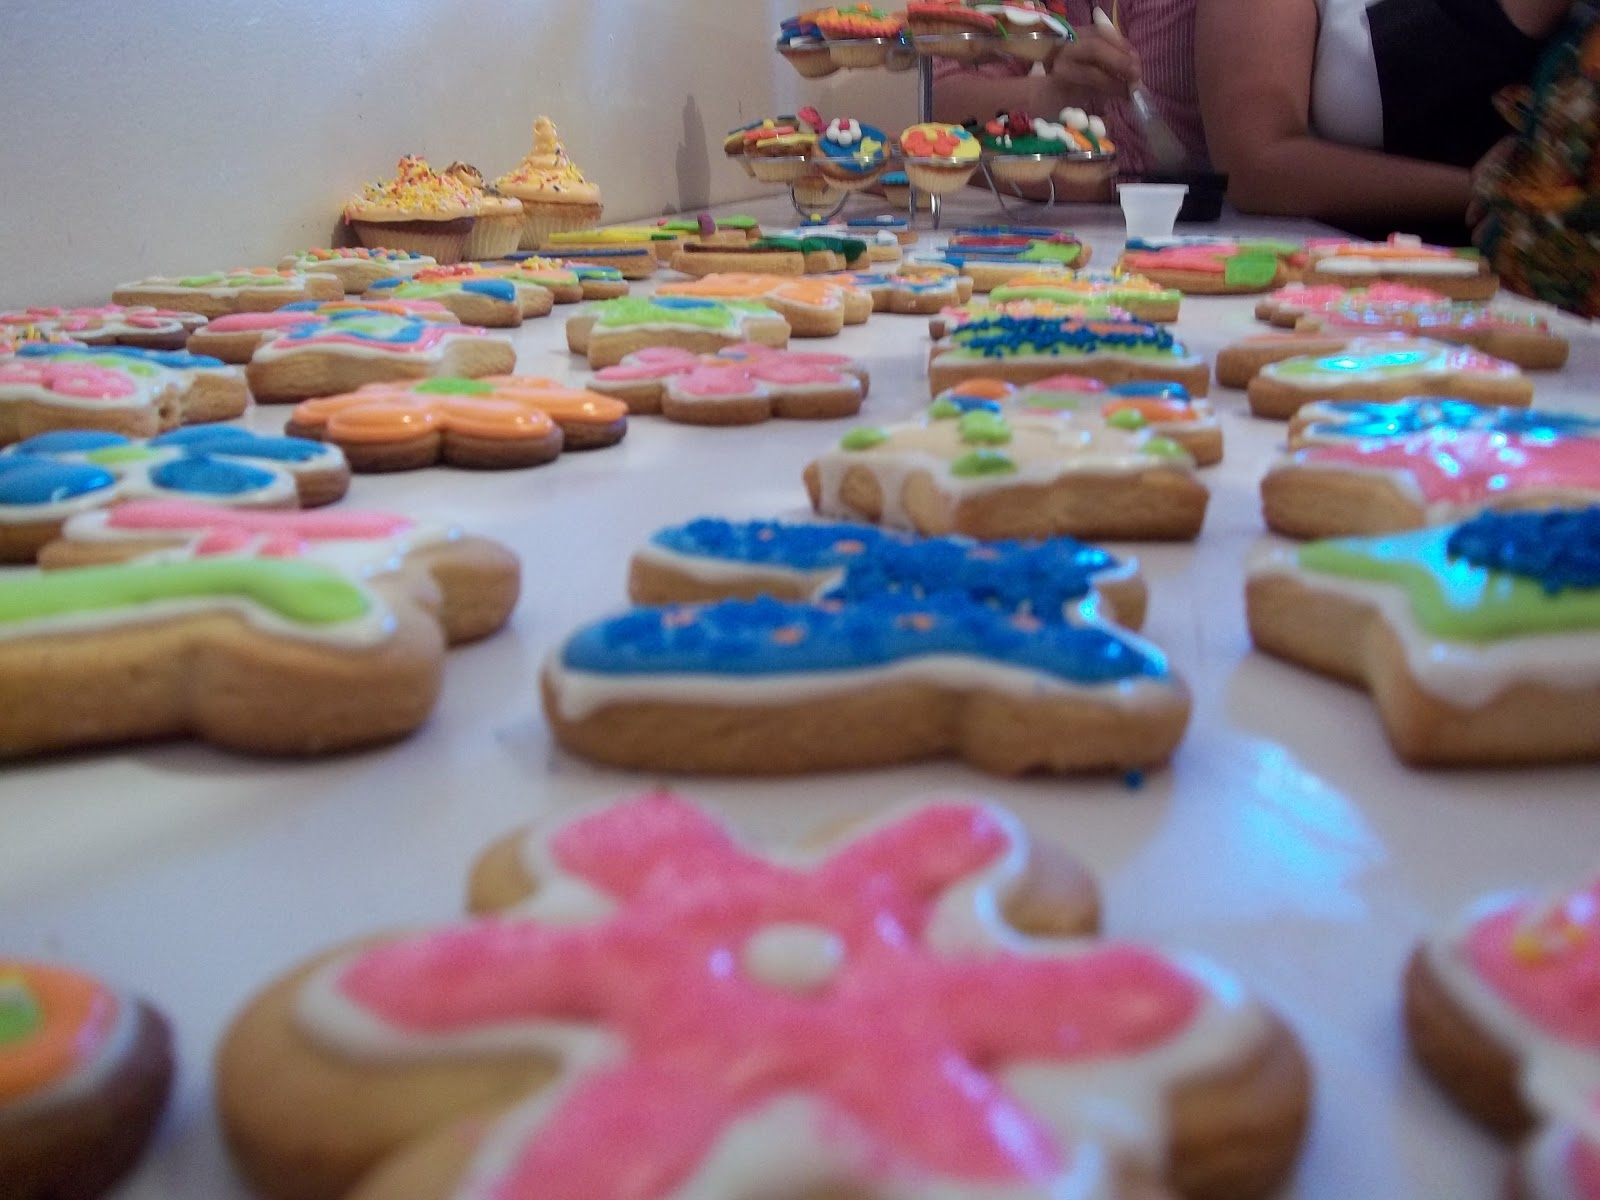 CURSO DE GALLETAS Y PONQUECITOS DECORADOS